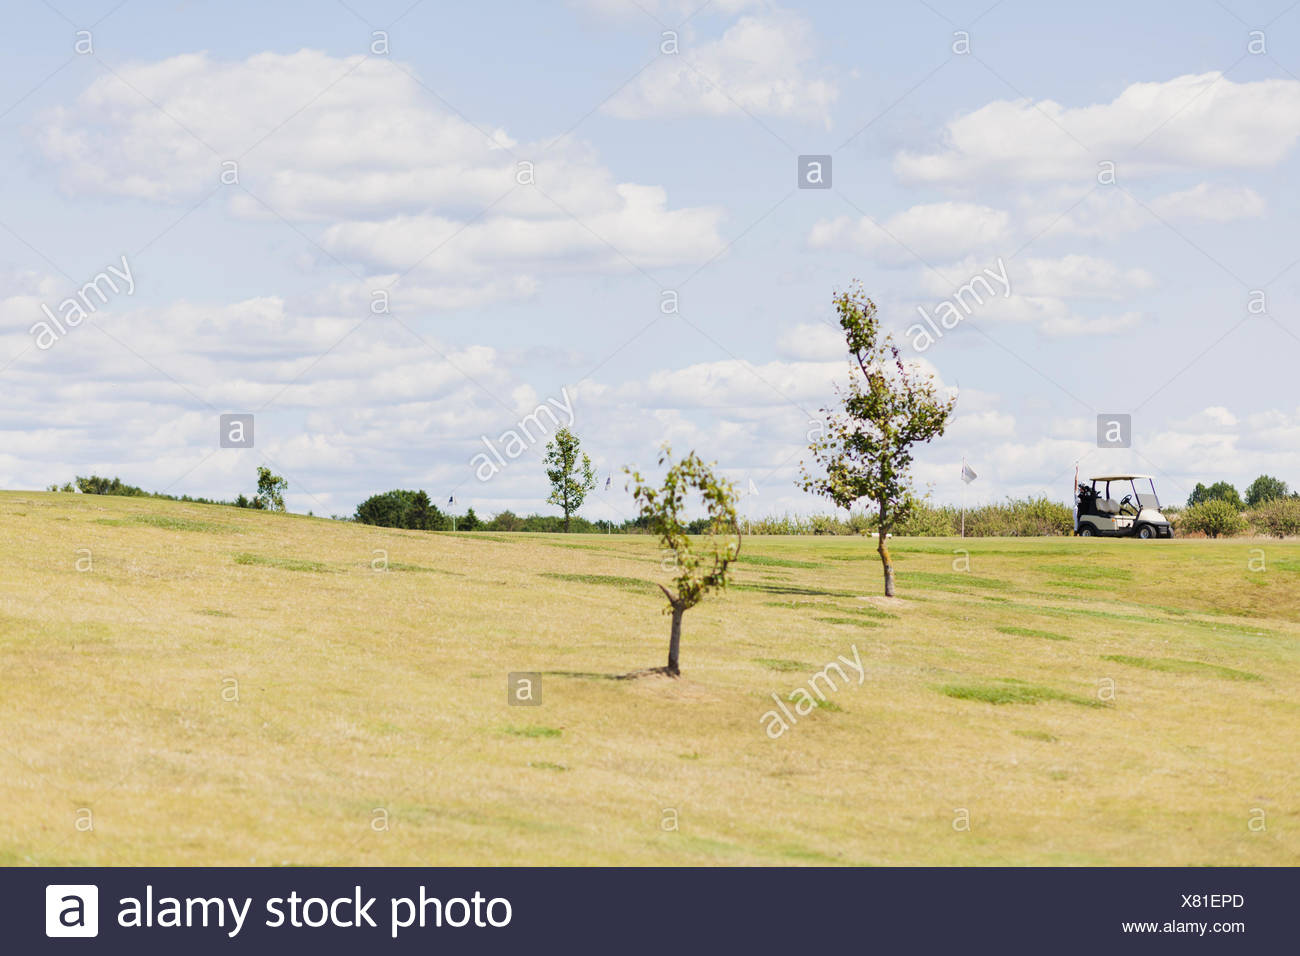 Mid distance view of golf cart on field against sky - Stock Image